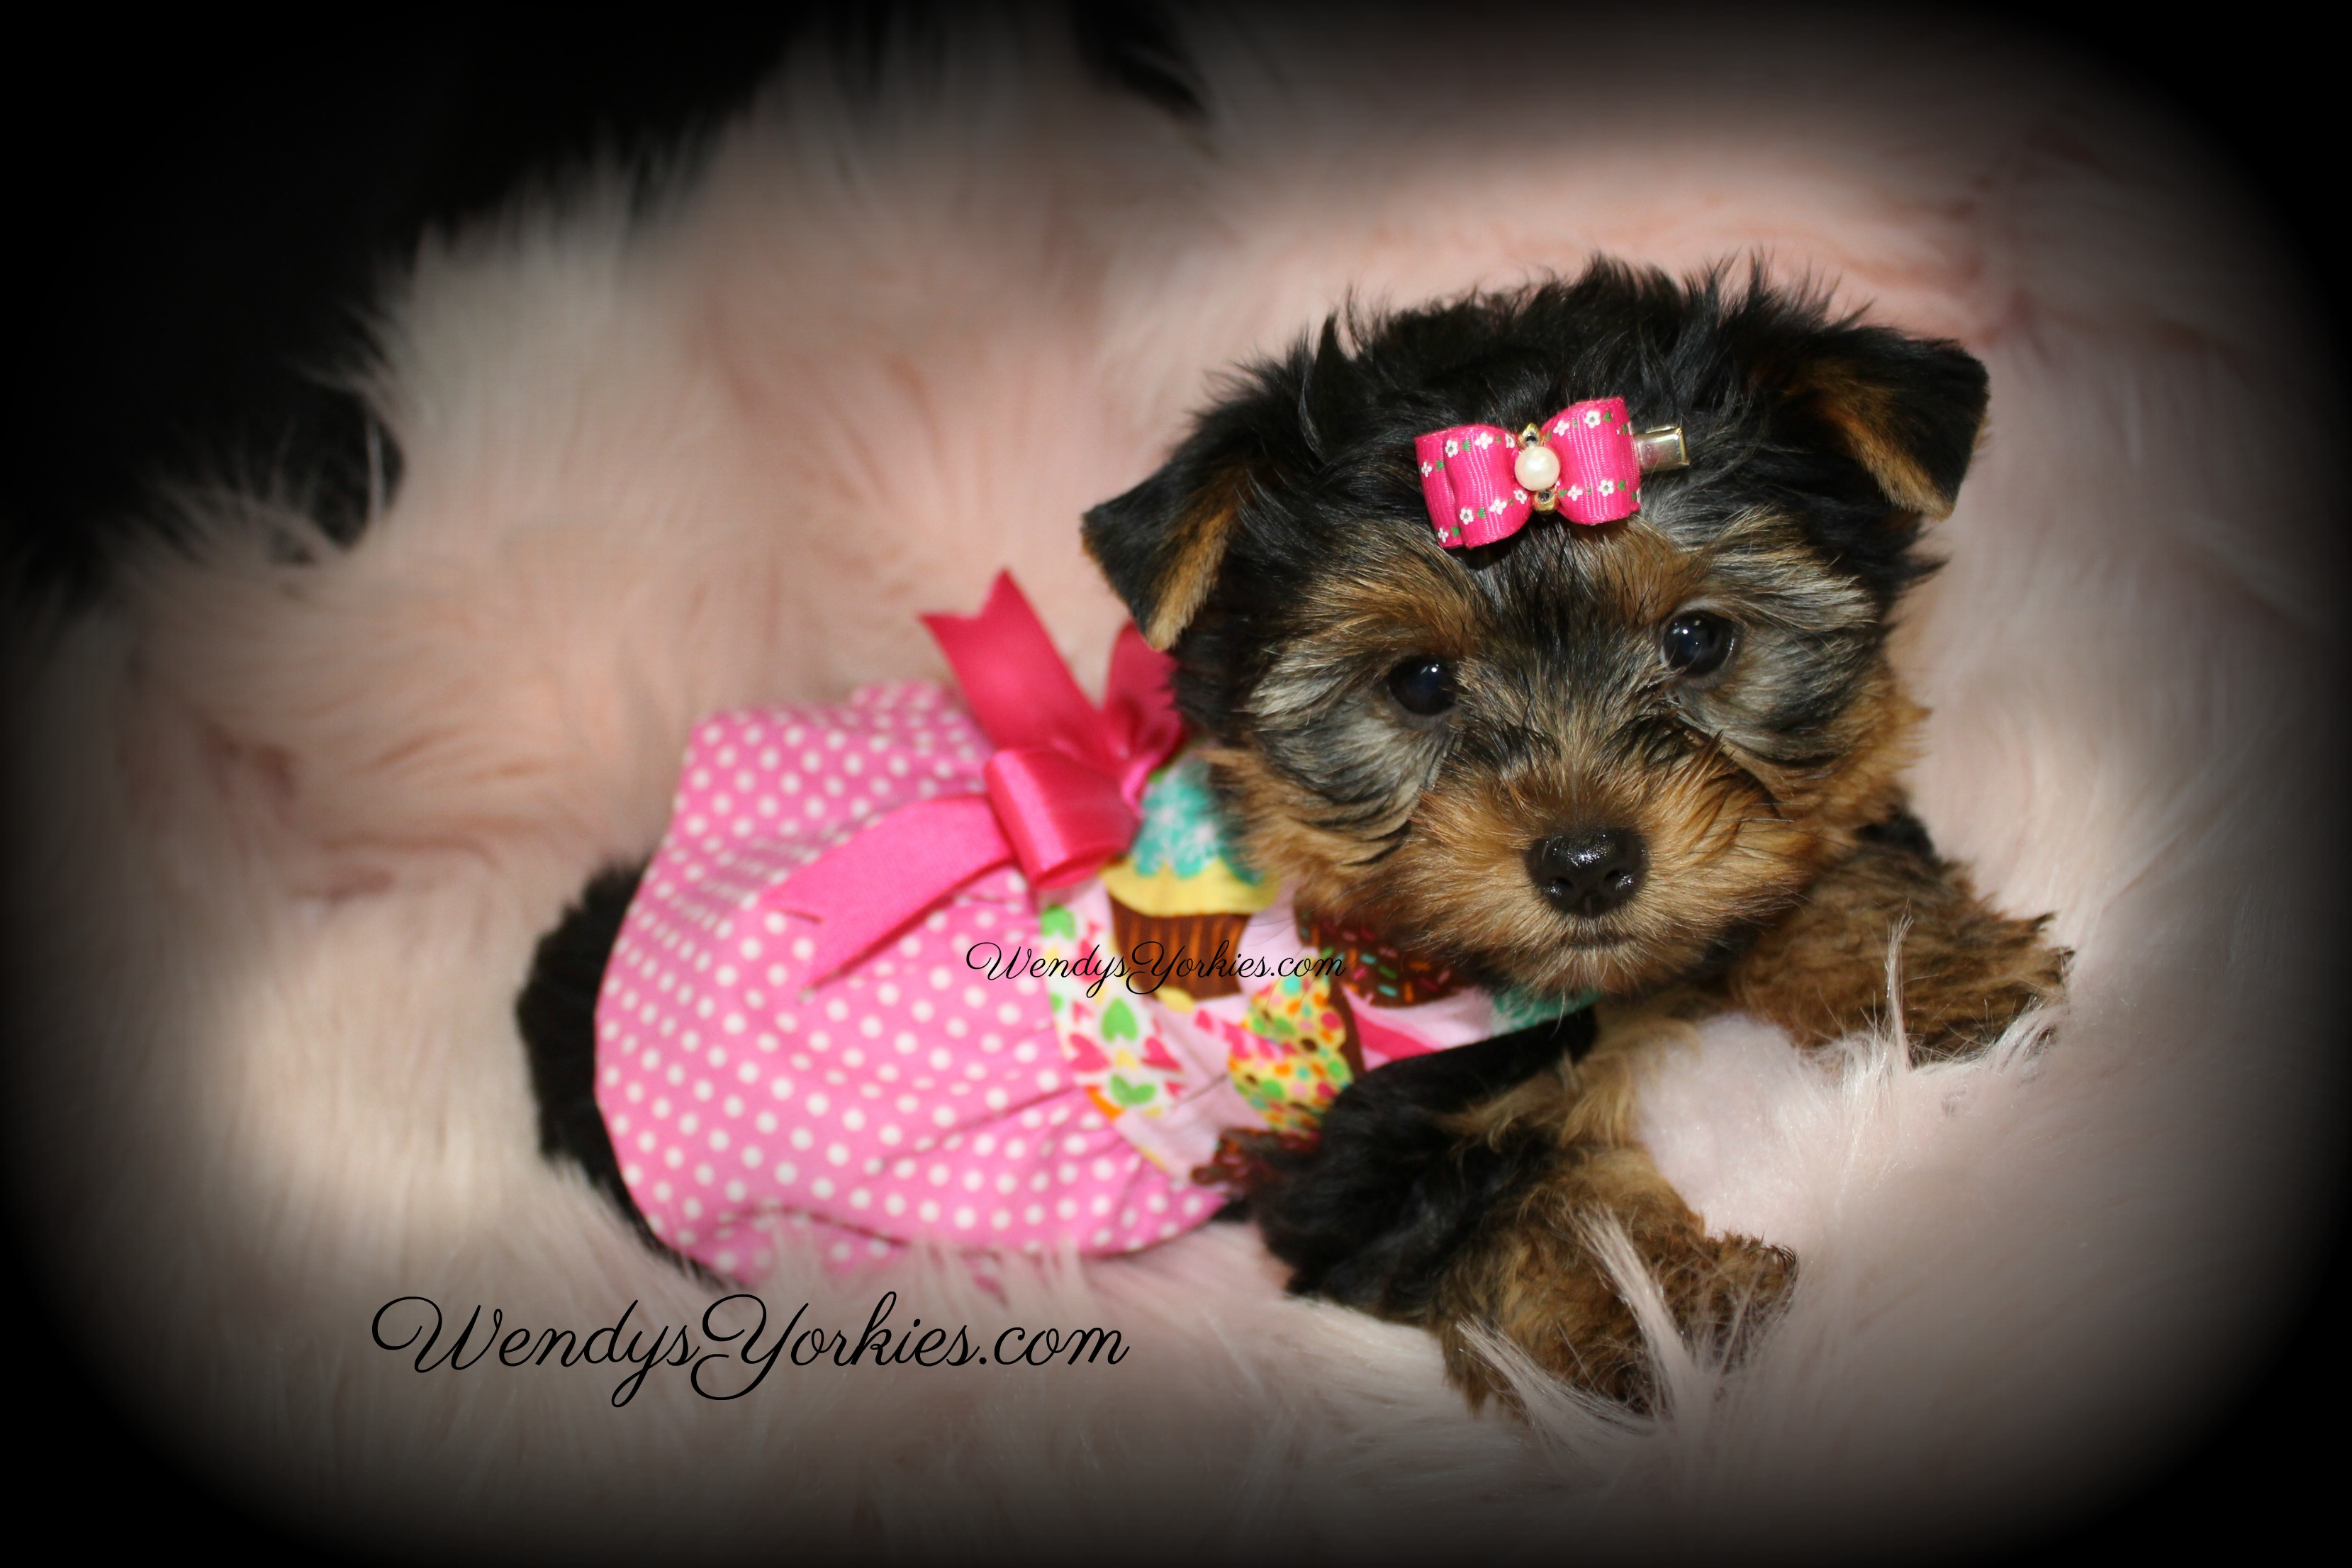 Yorkie puppies for sale, WendysYorkies.com, Loulou f1